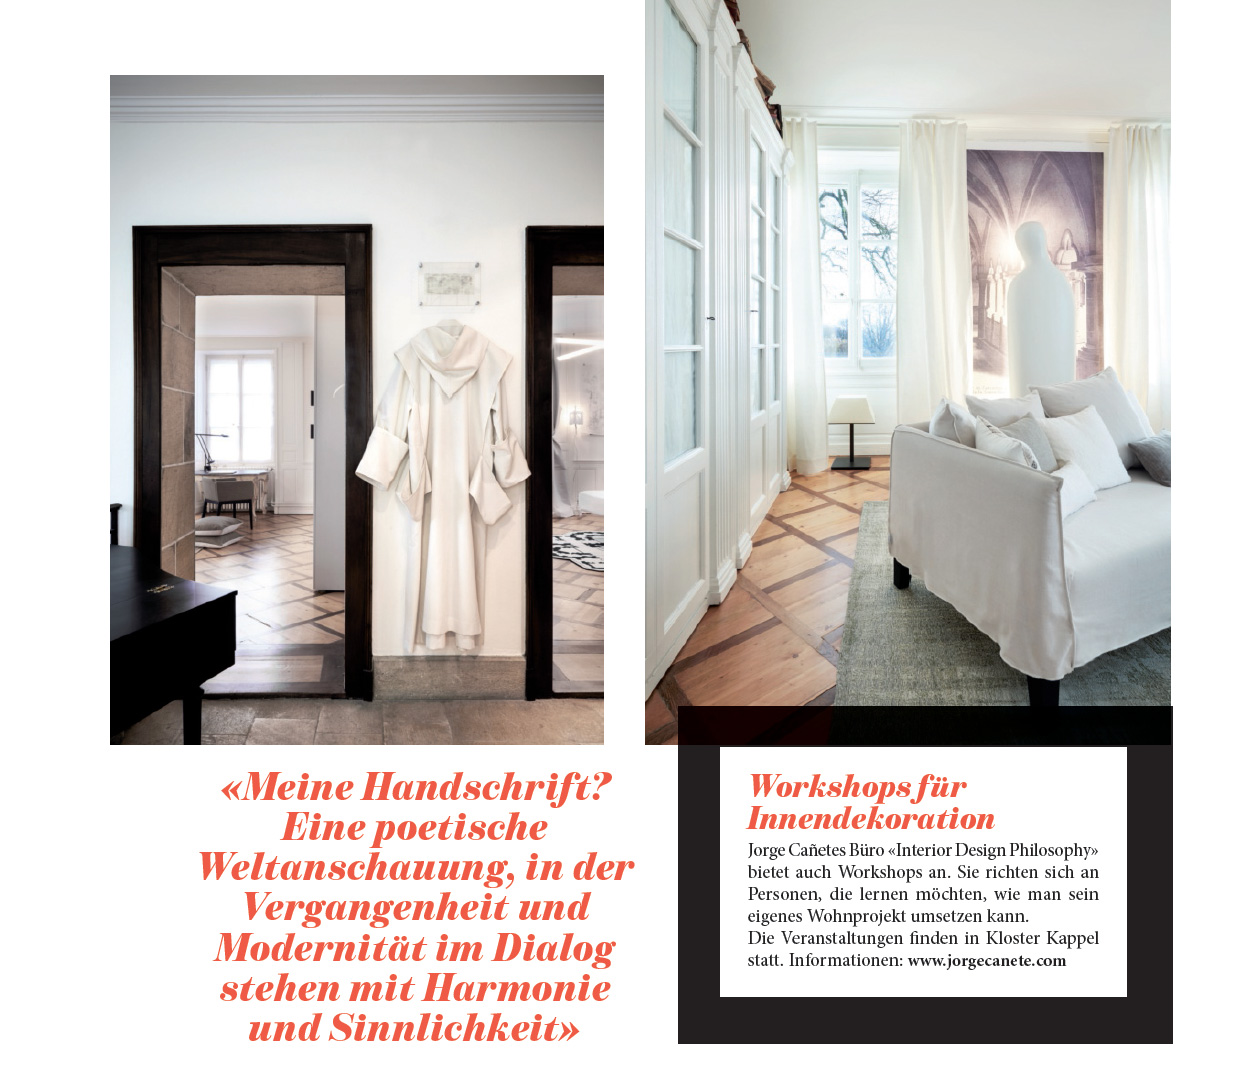 magazine sch ner wohnen page 4 interior design philosophy. Black Bedroom Furniture Sets. Home Design Ideas